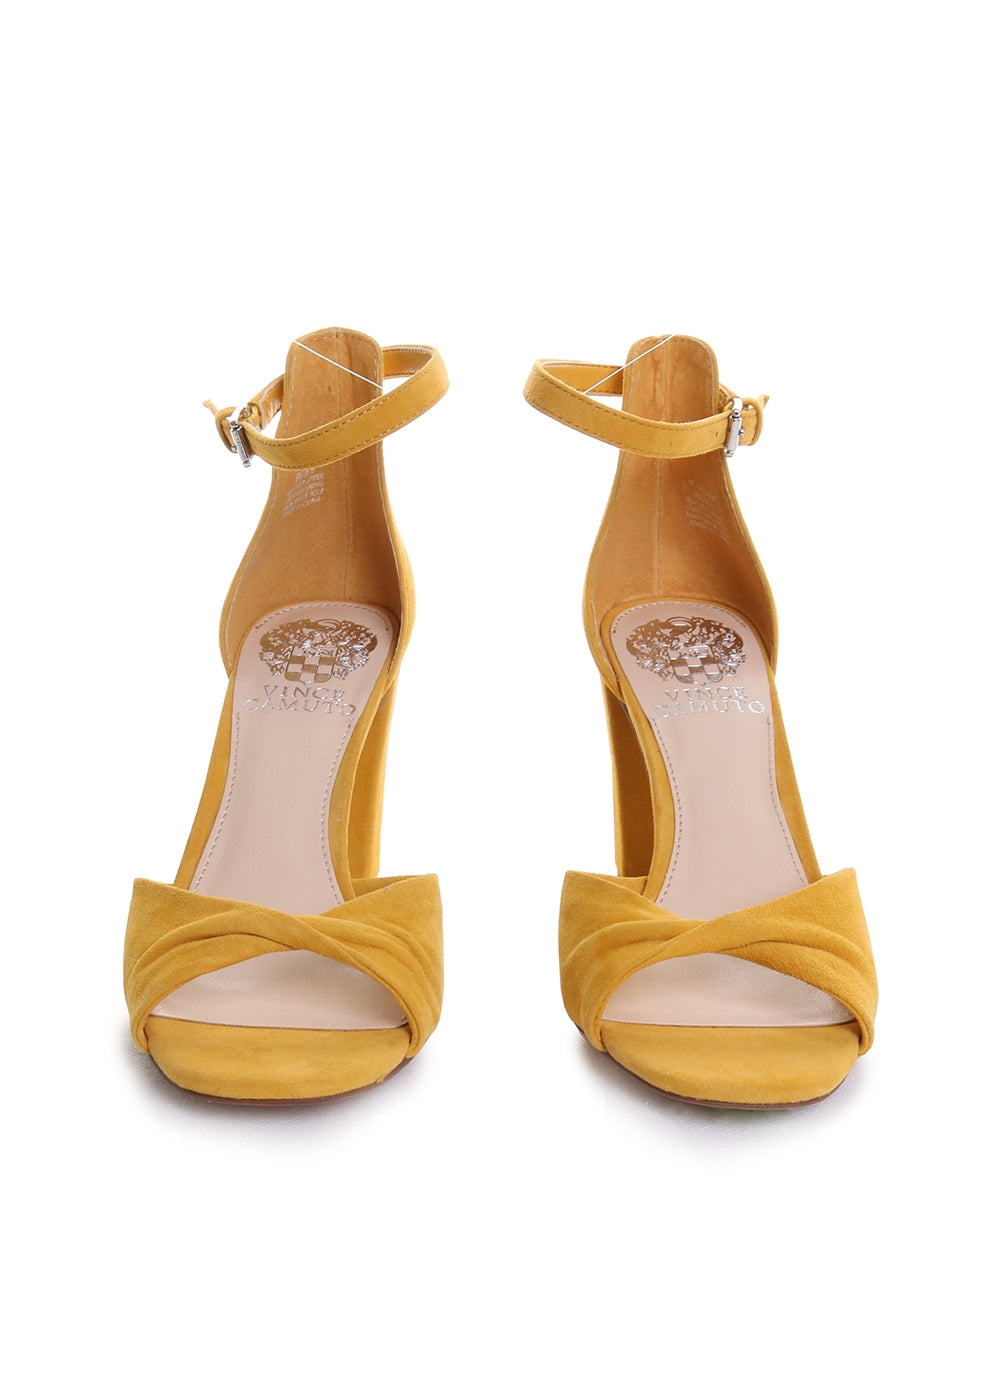 Wesher Twisted Strap Suede Heeled Sandals in Dandelion